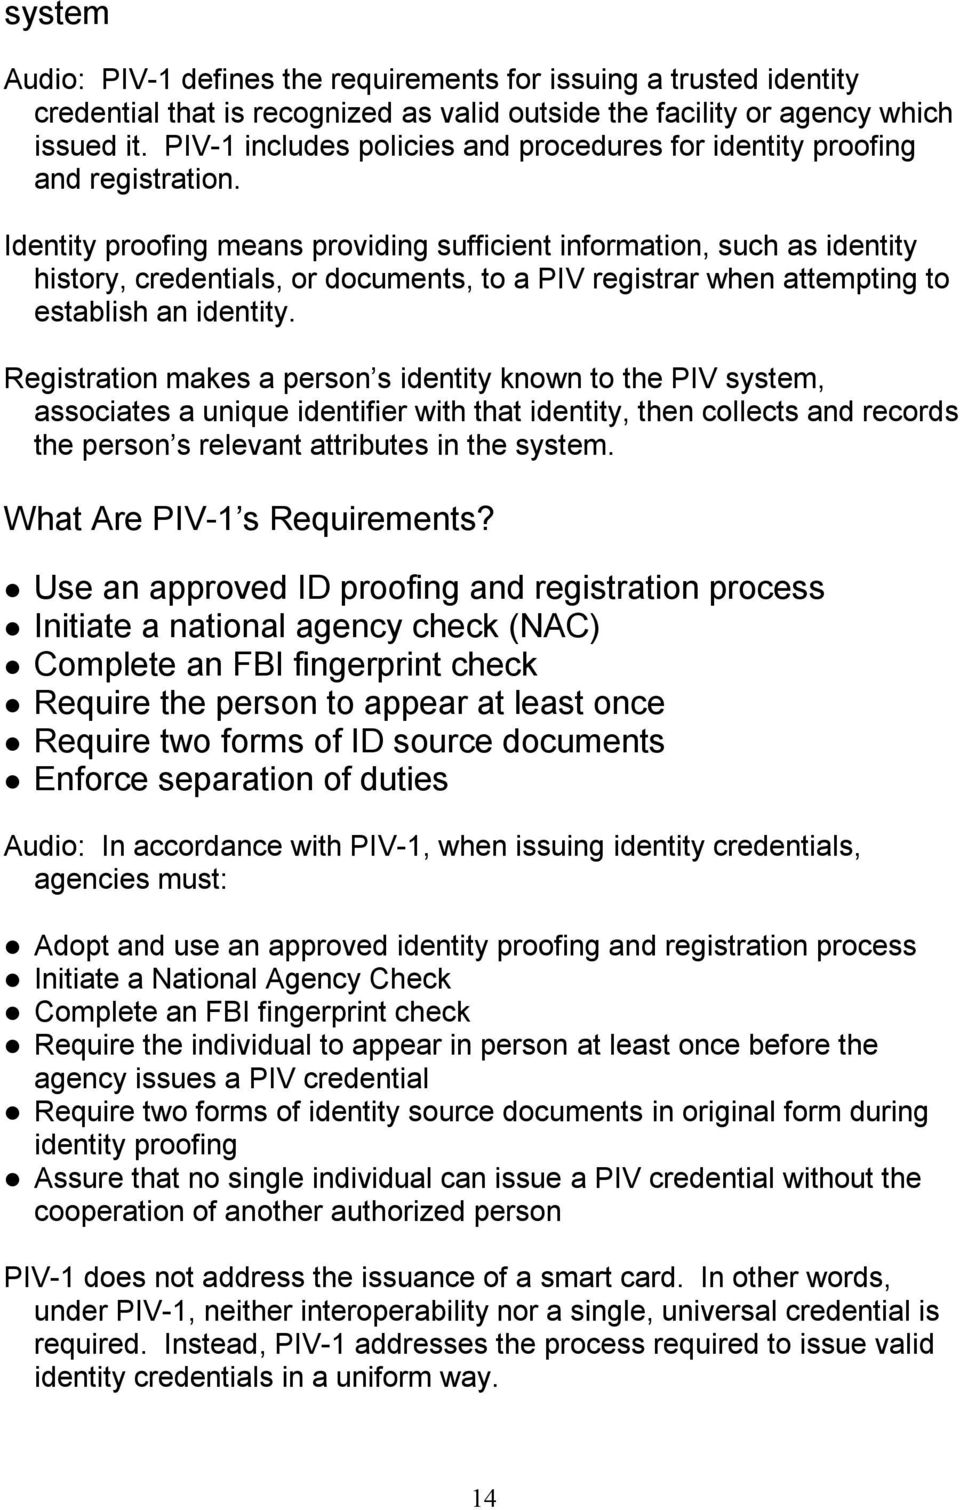 Identity proofing means providing sufficient information, such as identity history, credentials, or documents, to a PIV registrar when attempting to establish an identity.